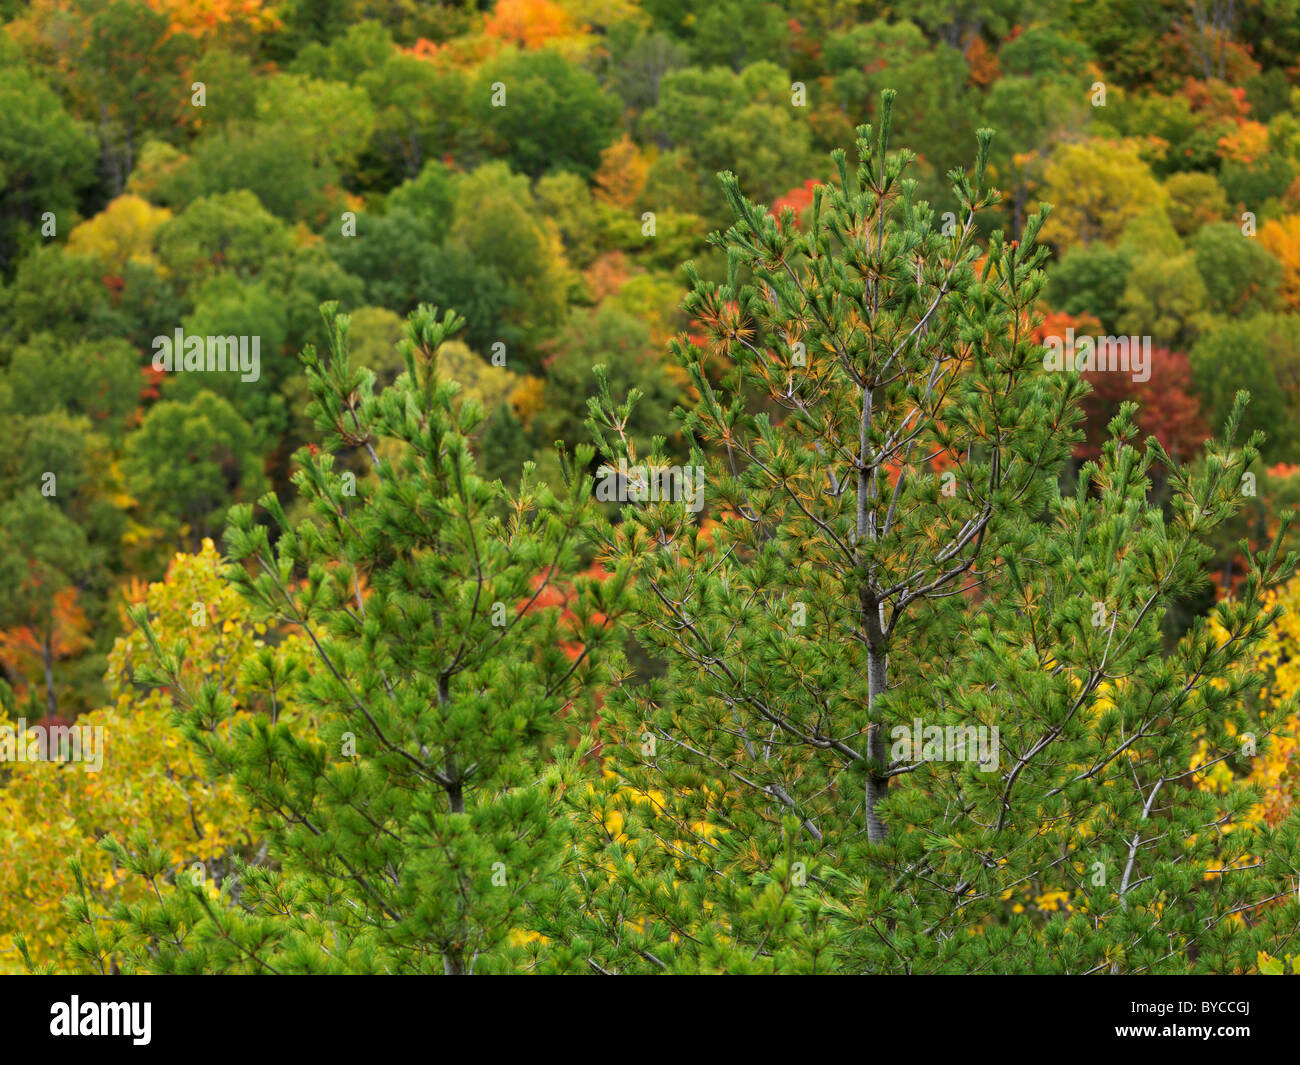 Colorful autumn forest. Fall nature scenery. Algonquin Provincial Park, Ontario, Canada. - Stock Image